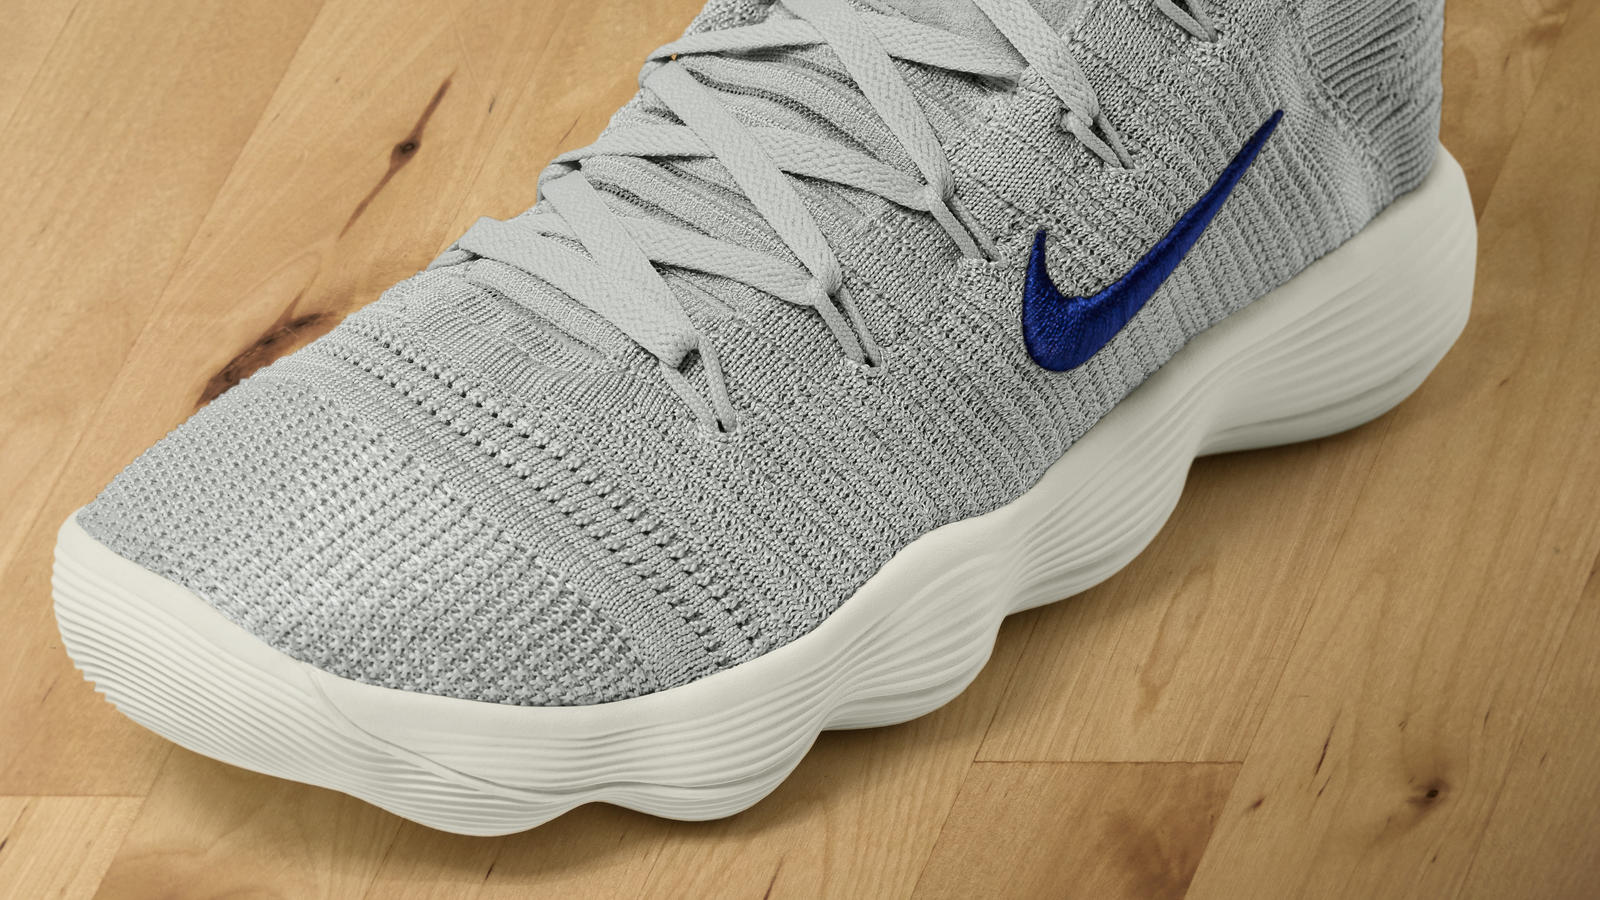 0d2e9707aaff1 Nike has released a new version of the Hyperdunk that combines the its  current favourite